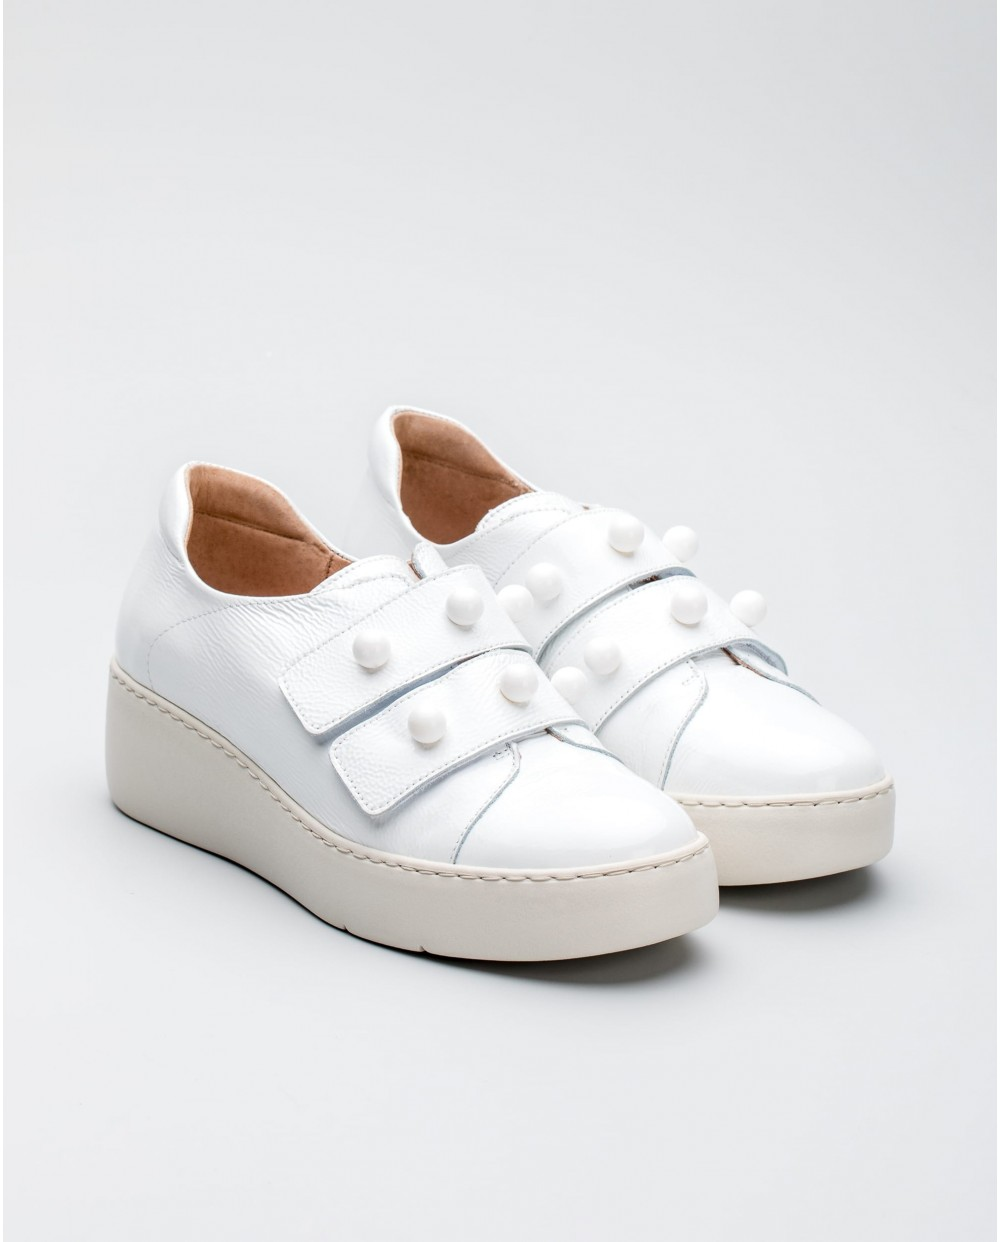 Perforated leather sports shoe